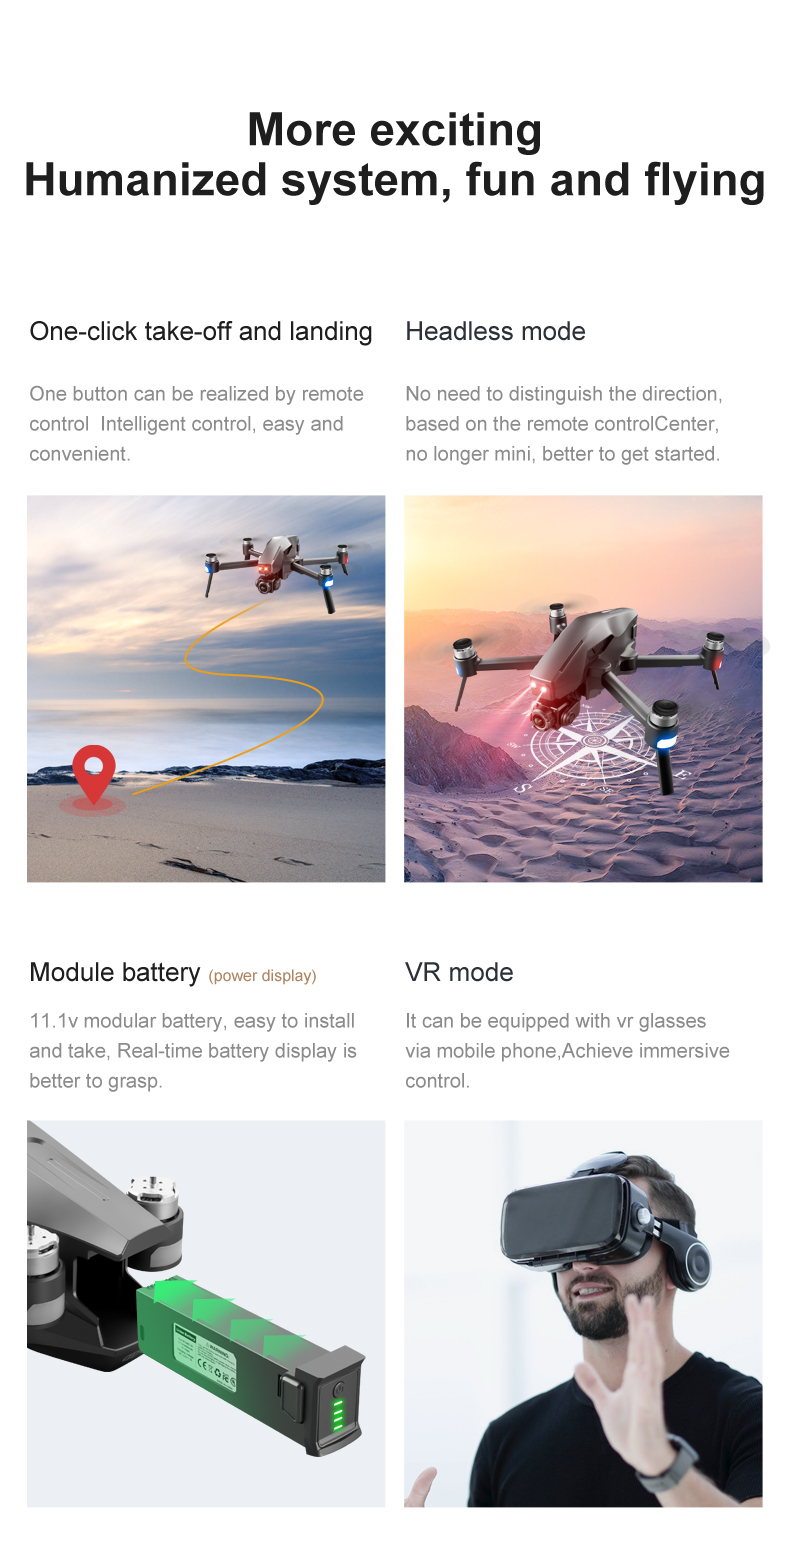 Ueeafff6fb388425fb96dc597b678d974q - 2021 M1 Pro 2 drone 4k HD mechanical 2-Axis gimbal camera 5G wifi gps system supports TF card drones distance 1.6km